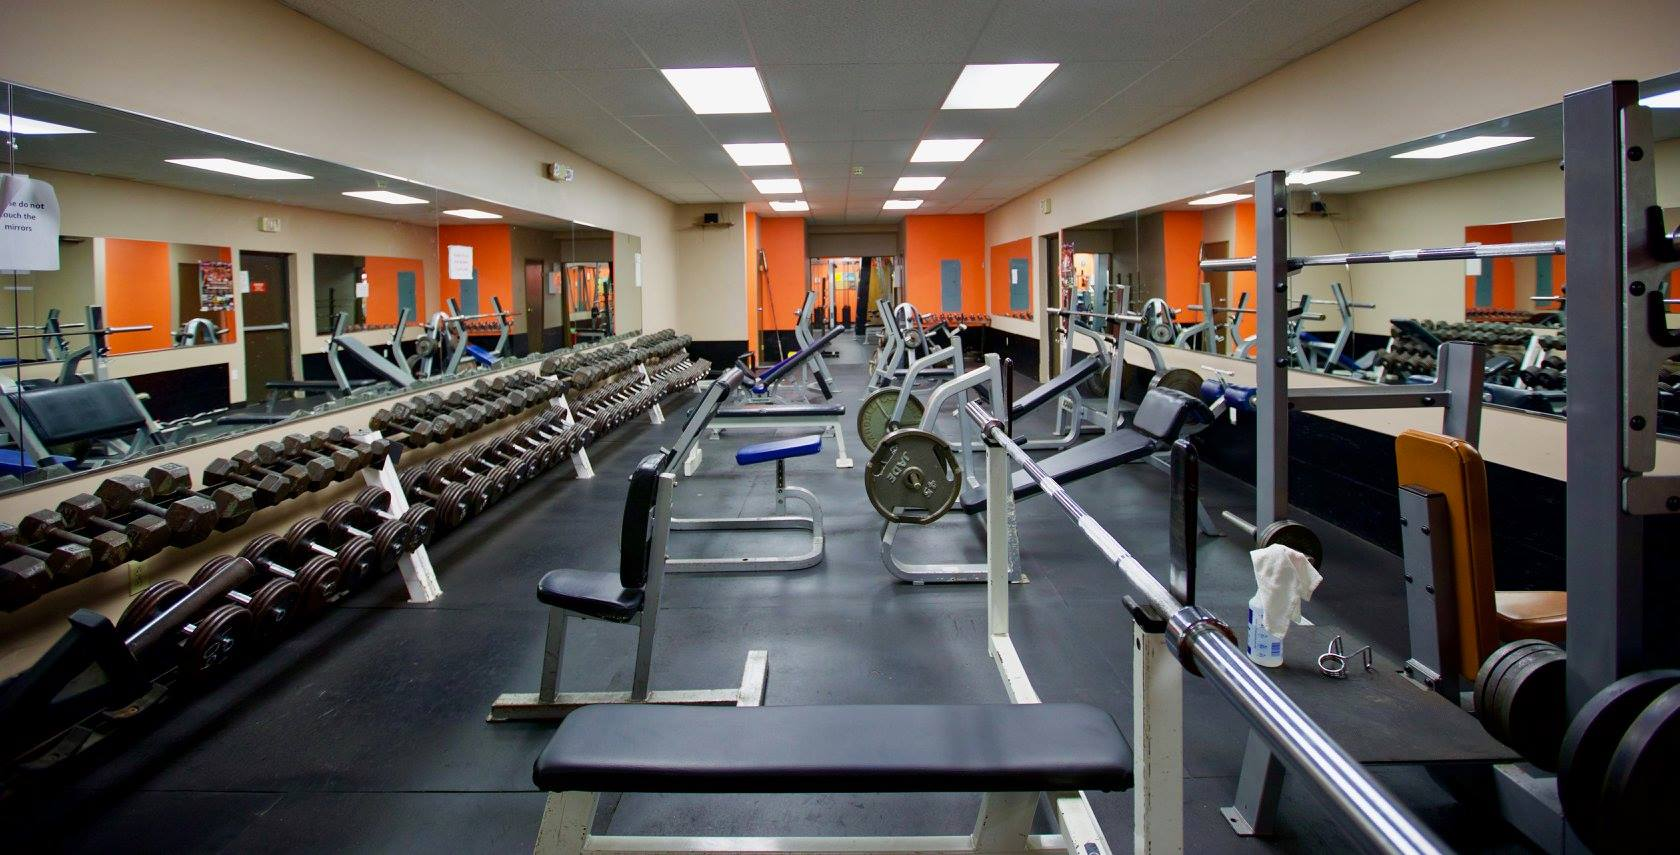 FREE WEIGHTS ROOM